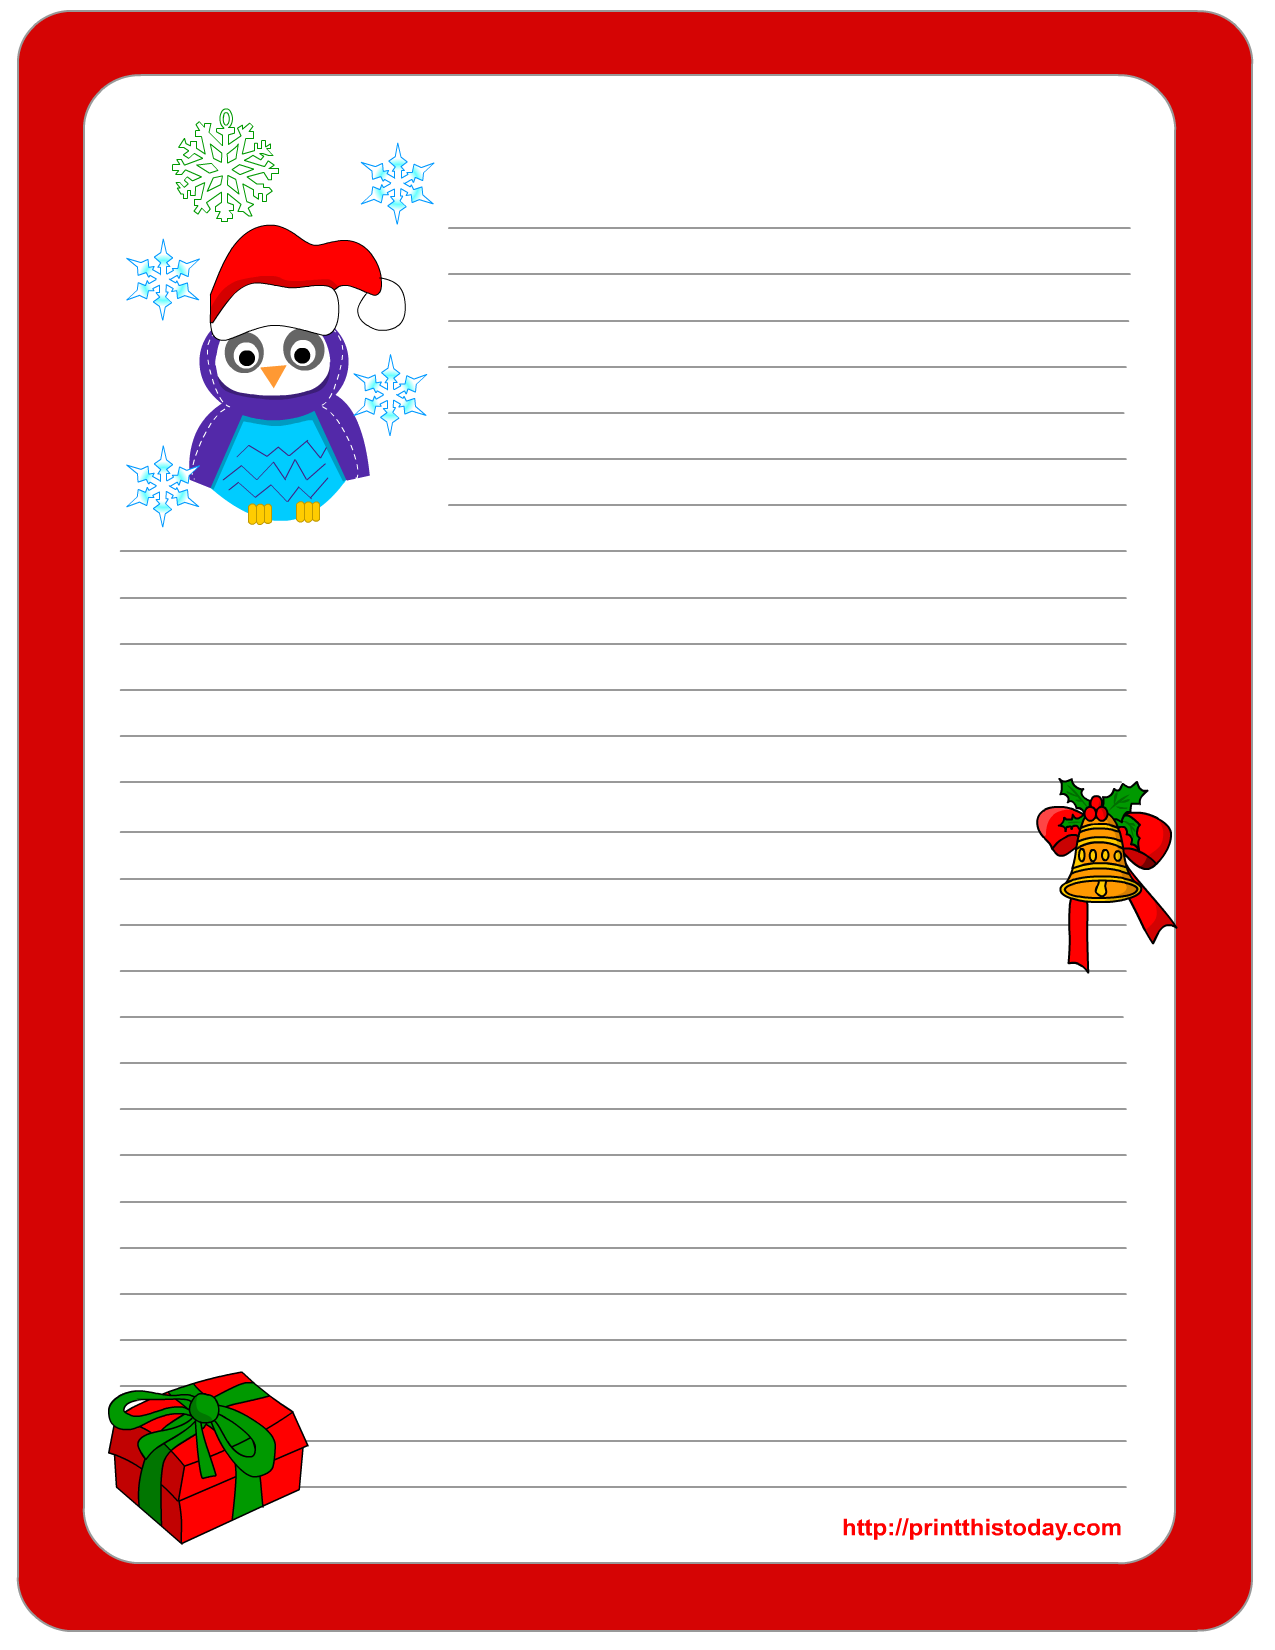 Owl Christmas Printable Stationery, Bookmarks, Candy Wrappers, Labels And  More :)  Free Printable Christmas List Template